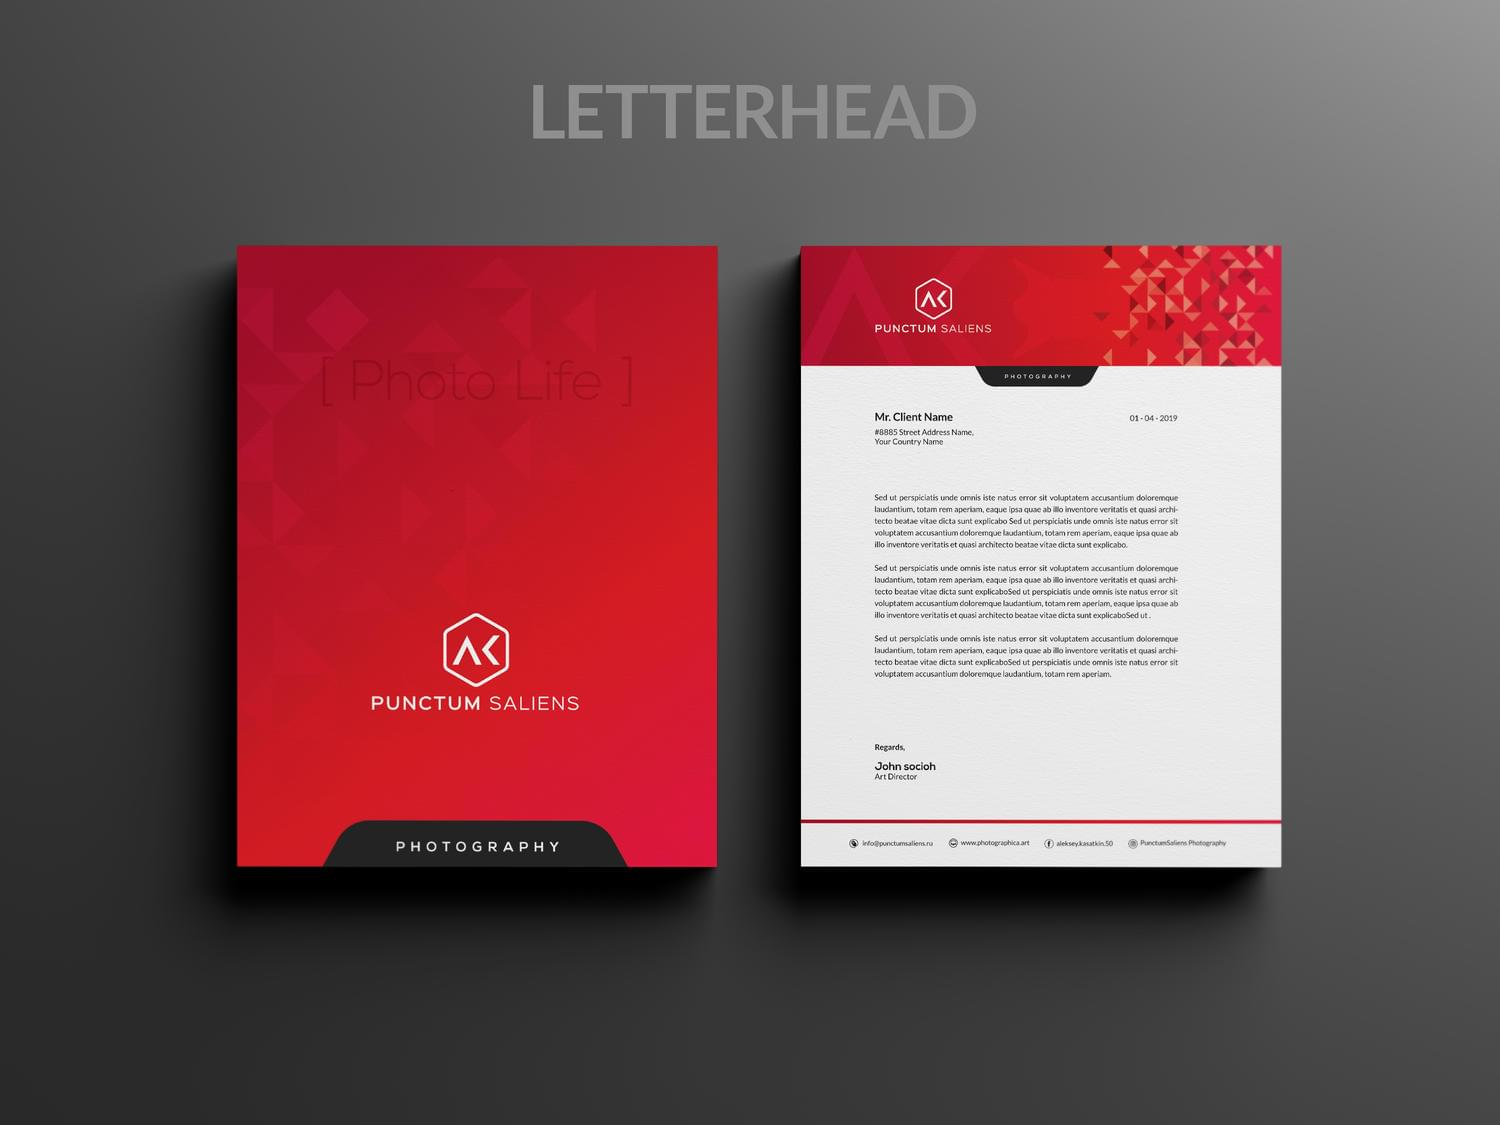 Letterhead Design by -axnorpix - 115709